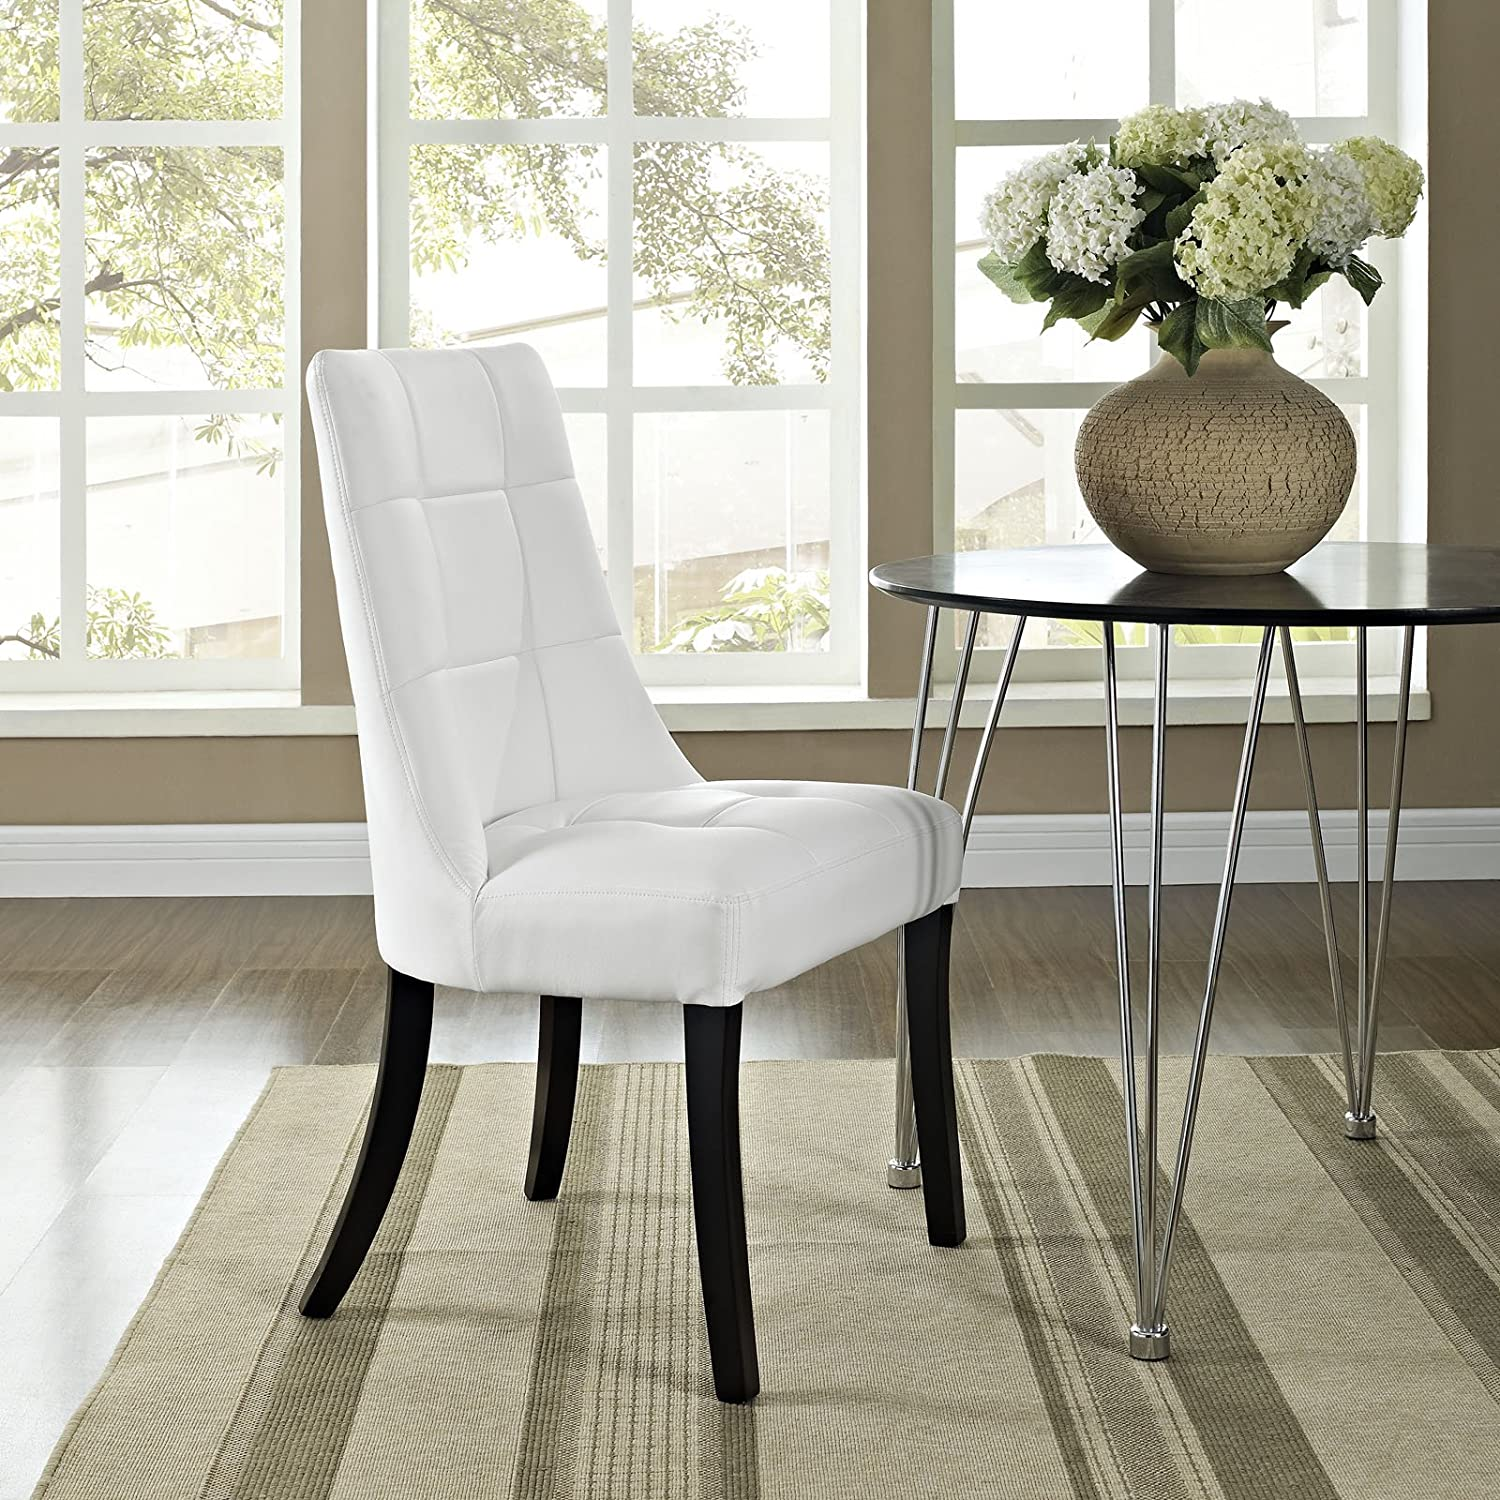 Amazon.com - Modway Noblesse Vinyl Dining Side Chair in White - Chairs